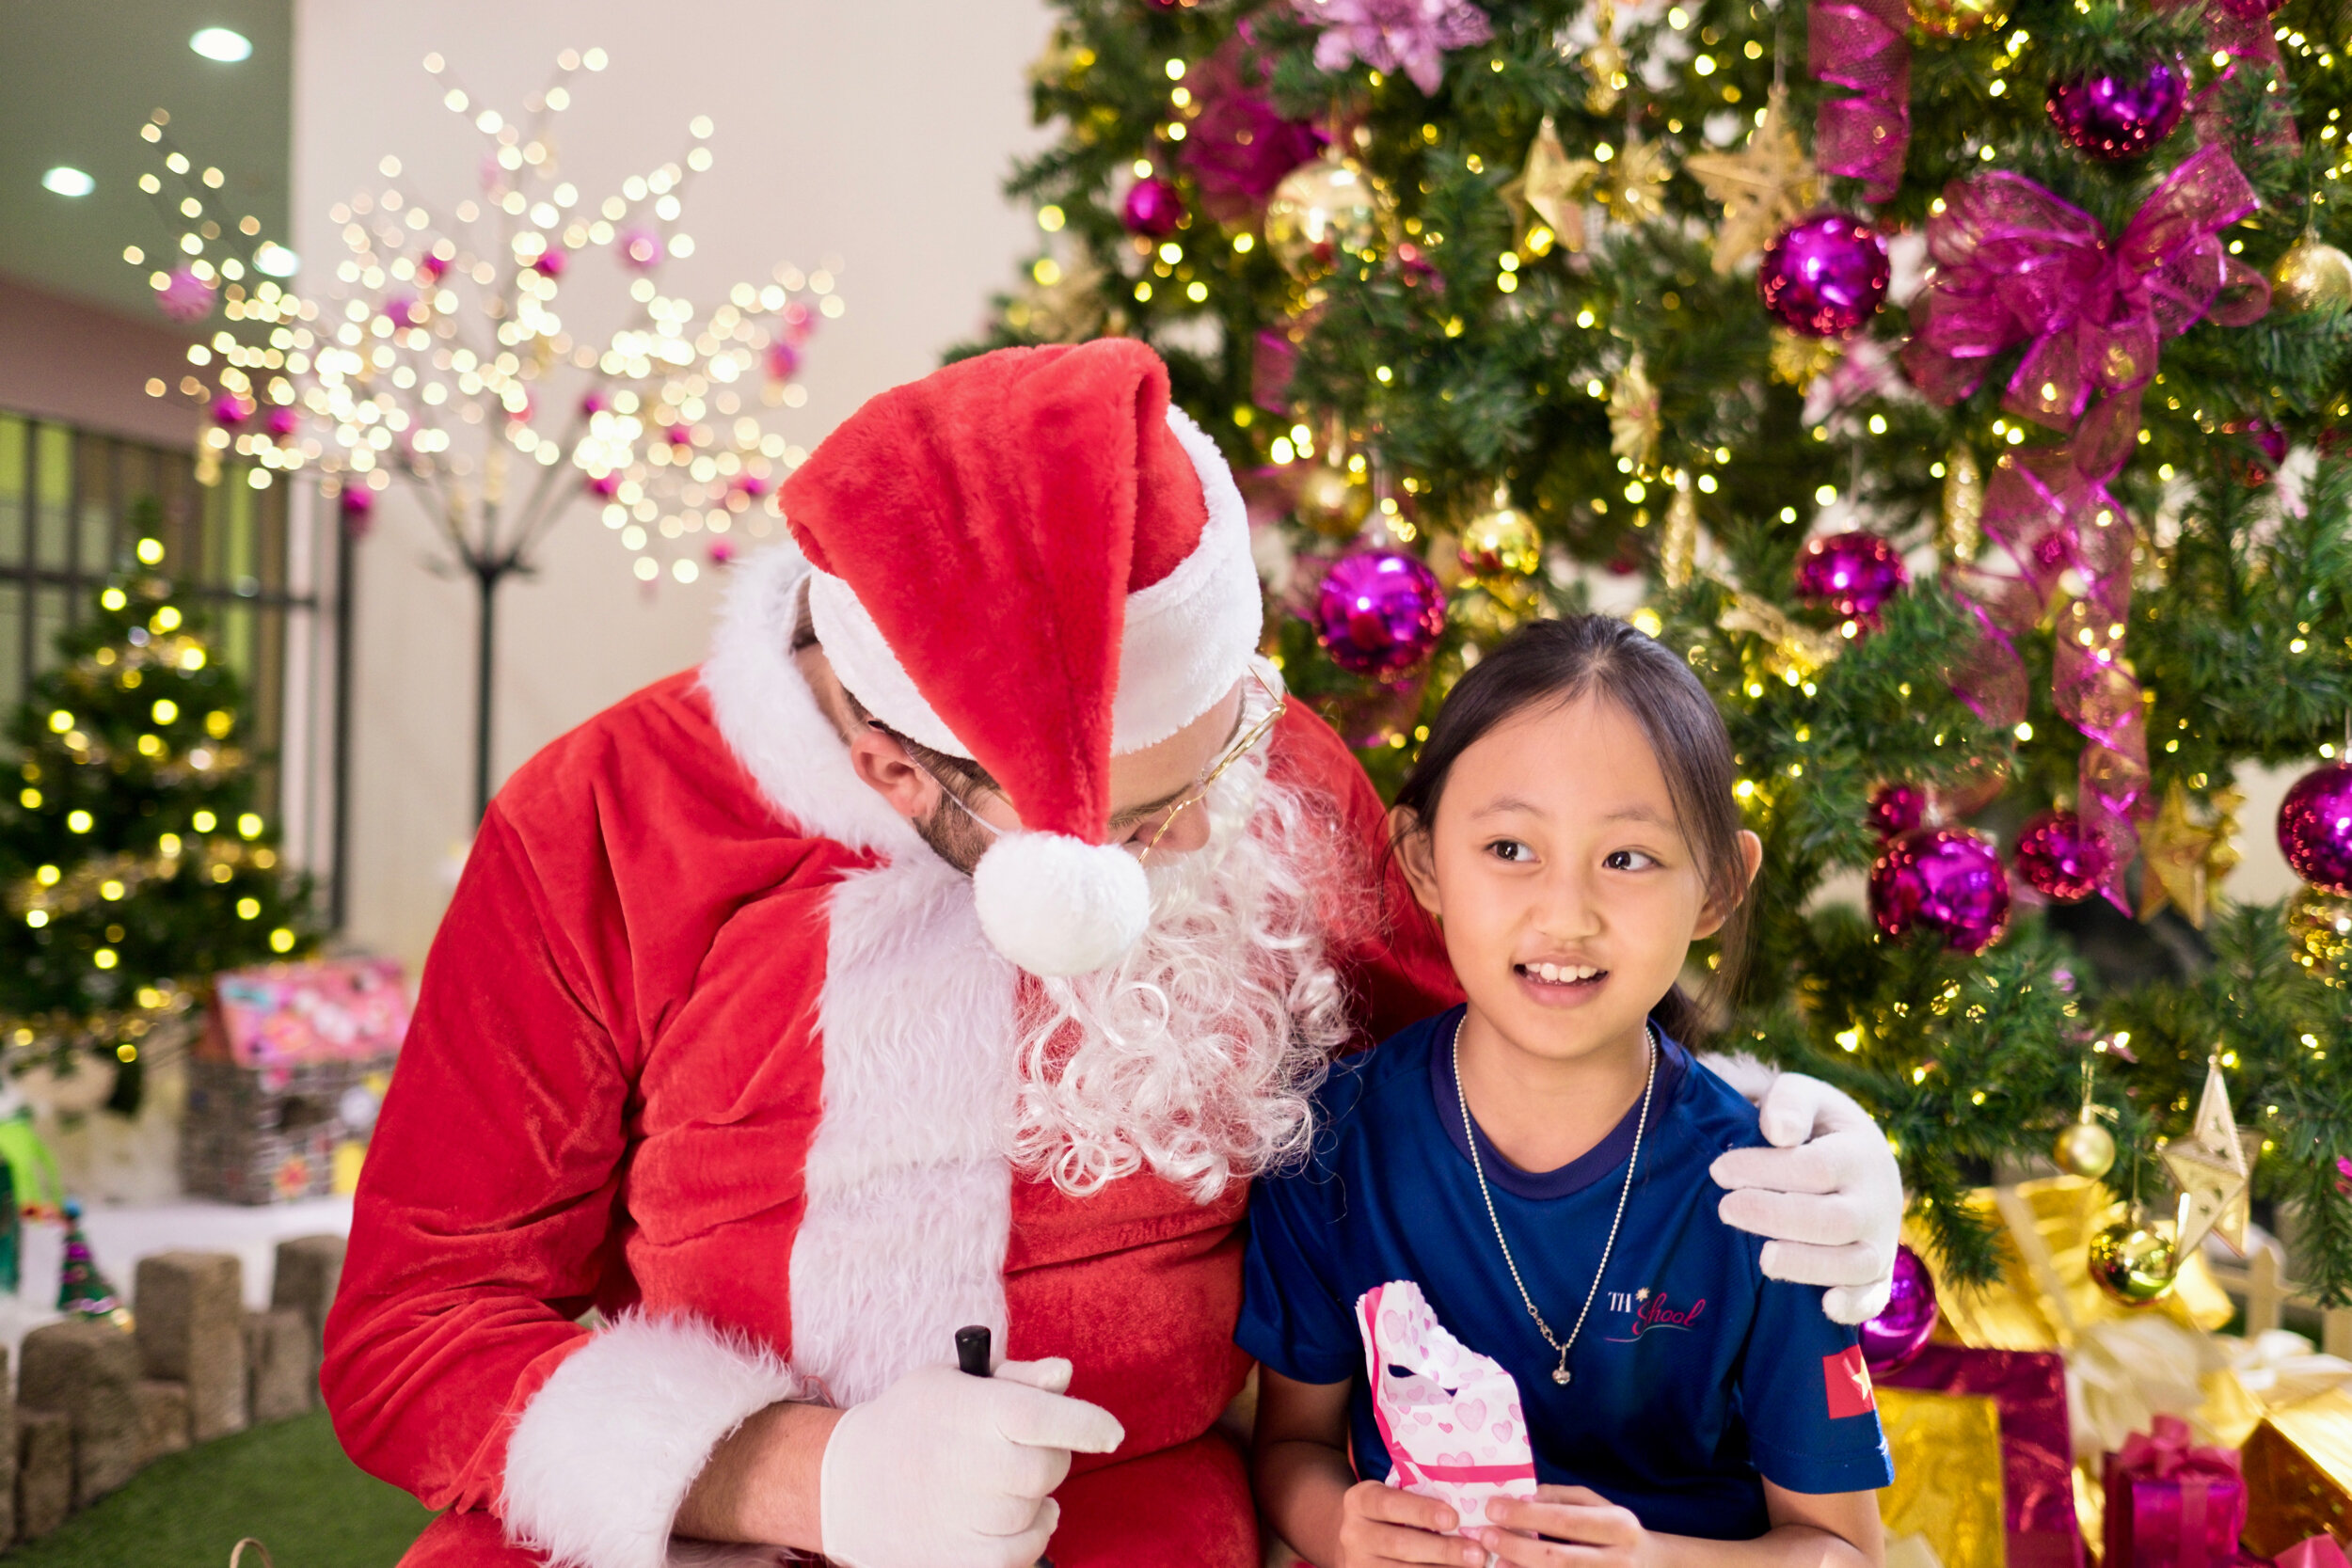 Photoshoot with Santa Clause-635.jpg